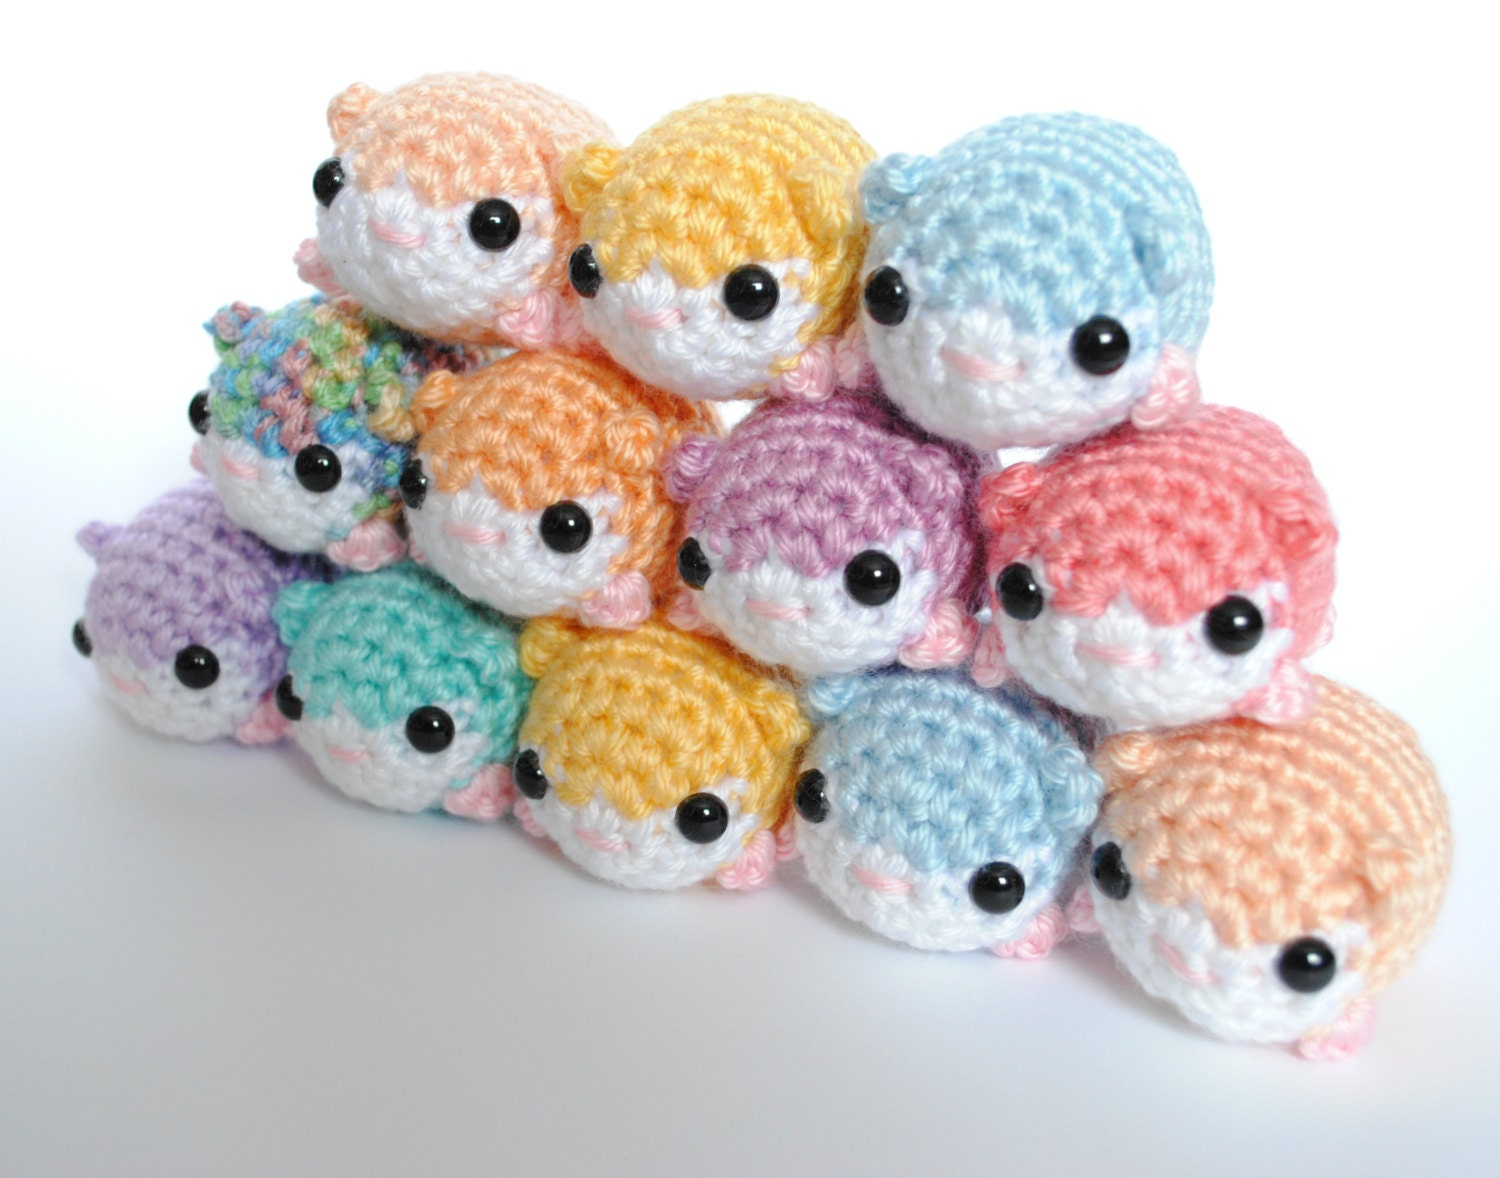 Hamster Amgirumi Crochet Plushie Choose Your Own Cute